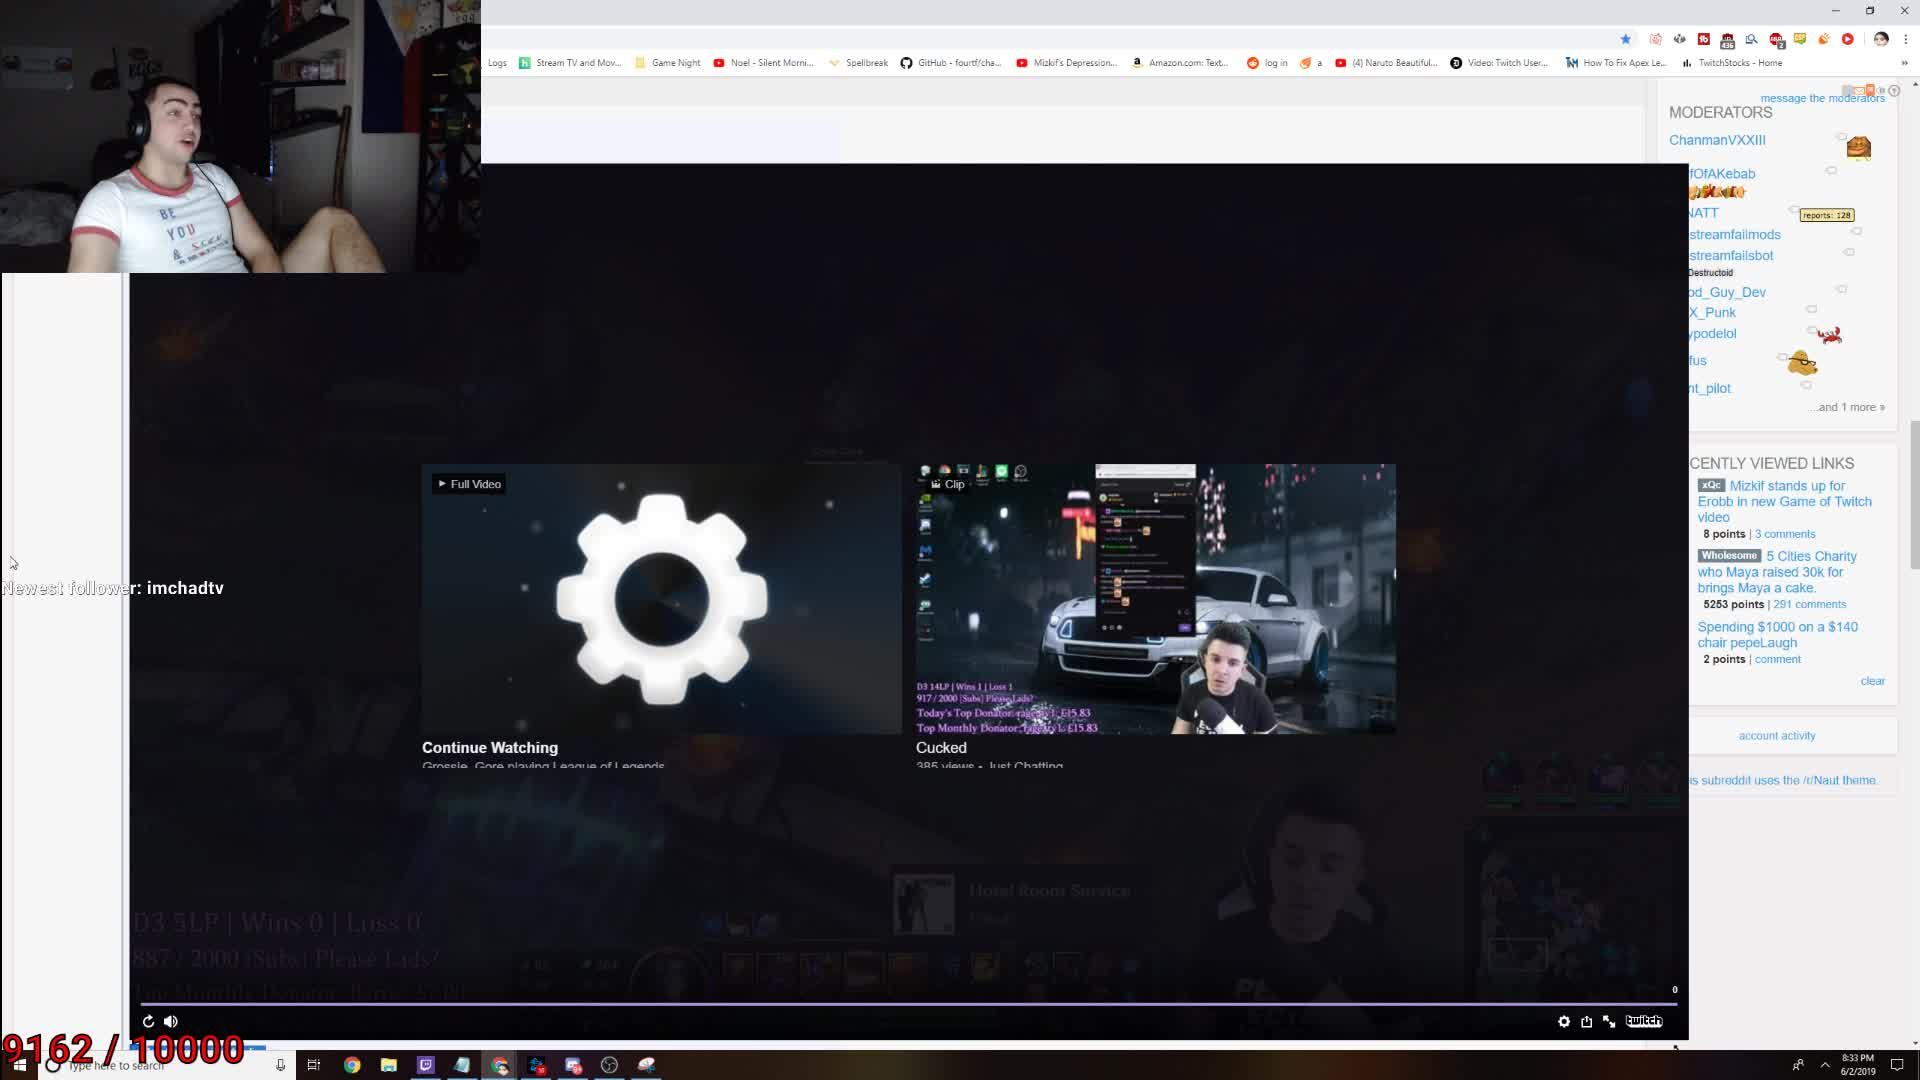 miz calls out gross gore on DNA video - Twitch